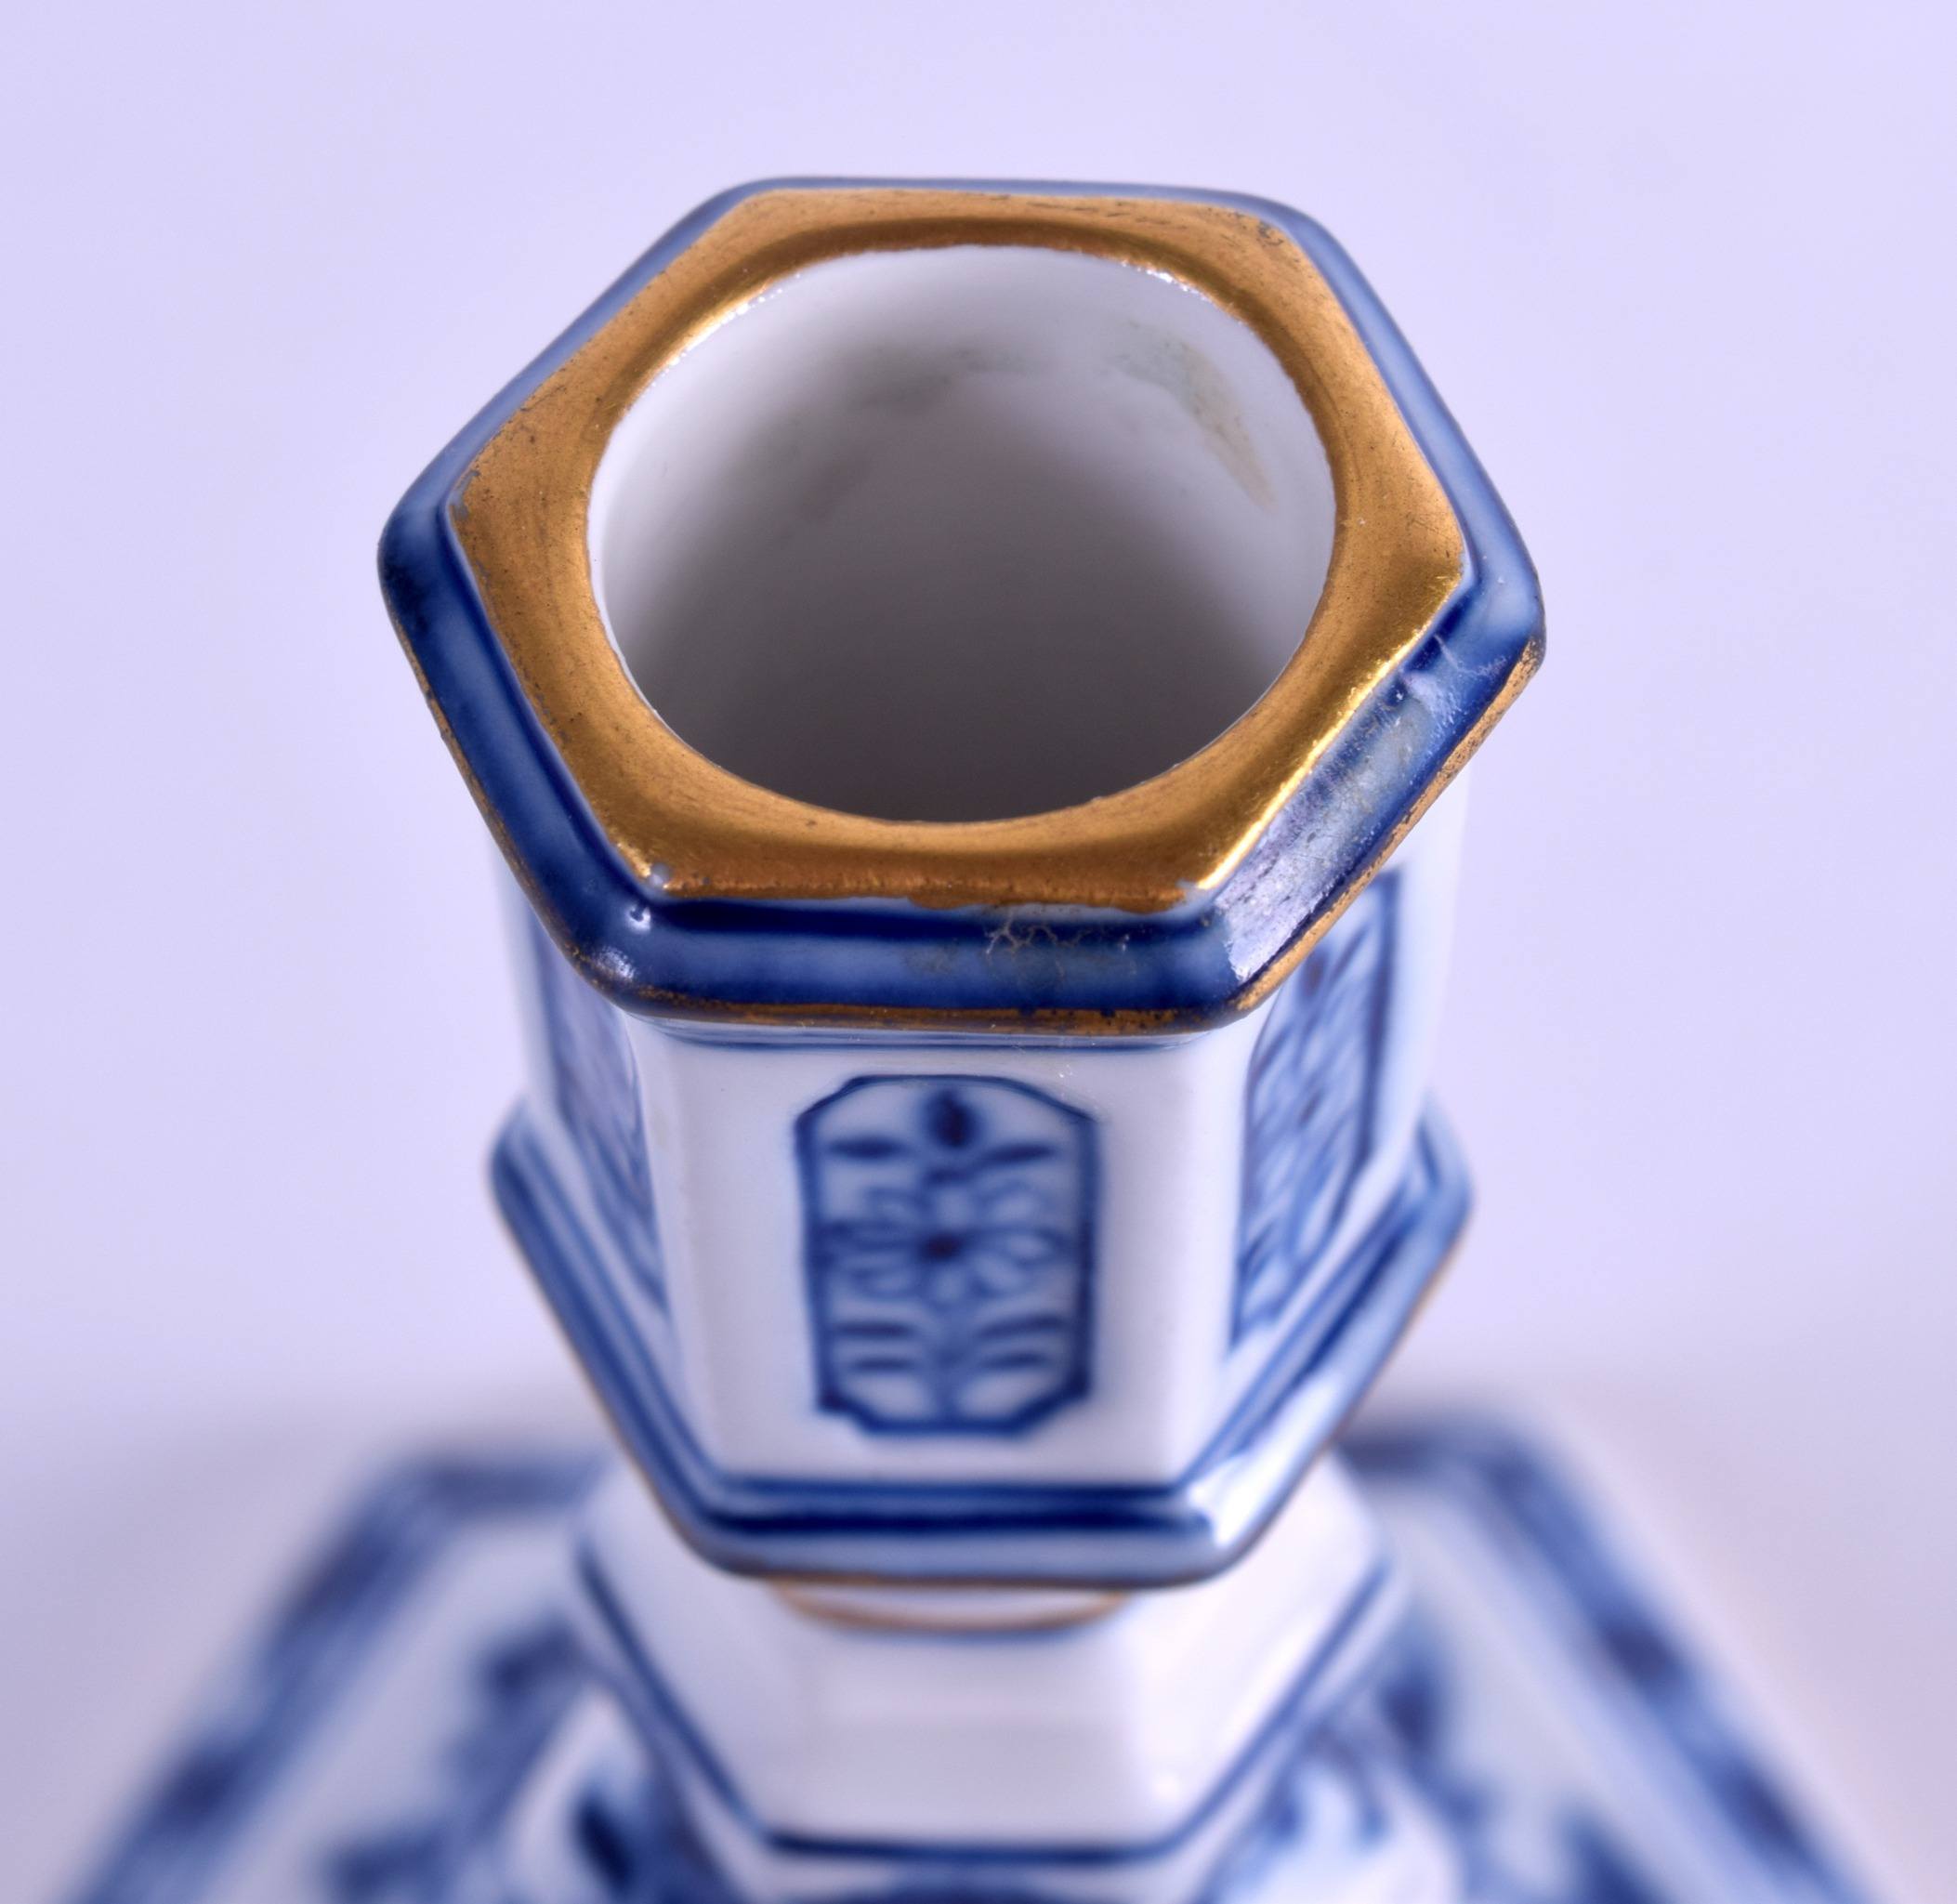 Lot 52 - A 19TH CENTURY MEISSEN BLUE AND WHITE PORCELAIN CANDLESTICK painted with an onion type pattern. 13